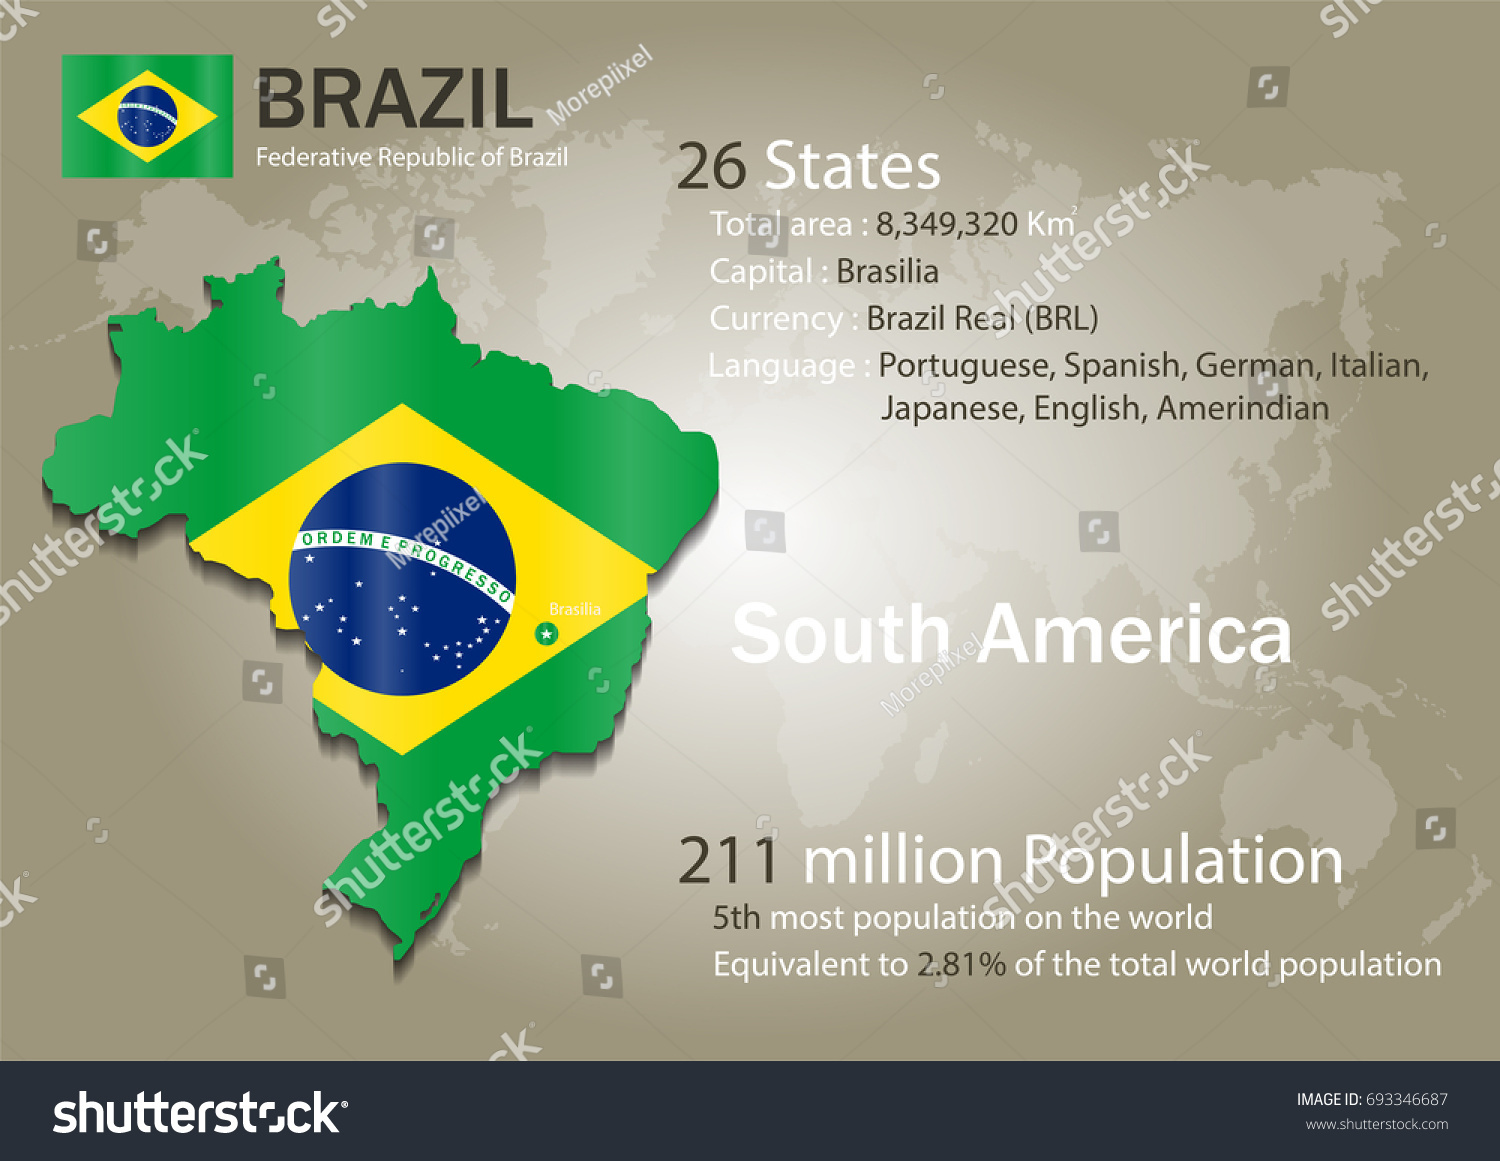 Brazil world map country flag texture stock vector 693346687 brazil world map with a country flag texture world map geography gumiabroncs Image collections